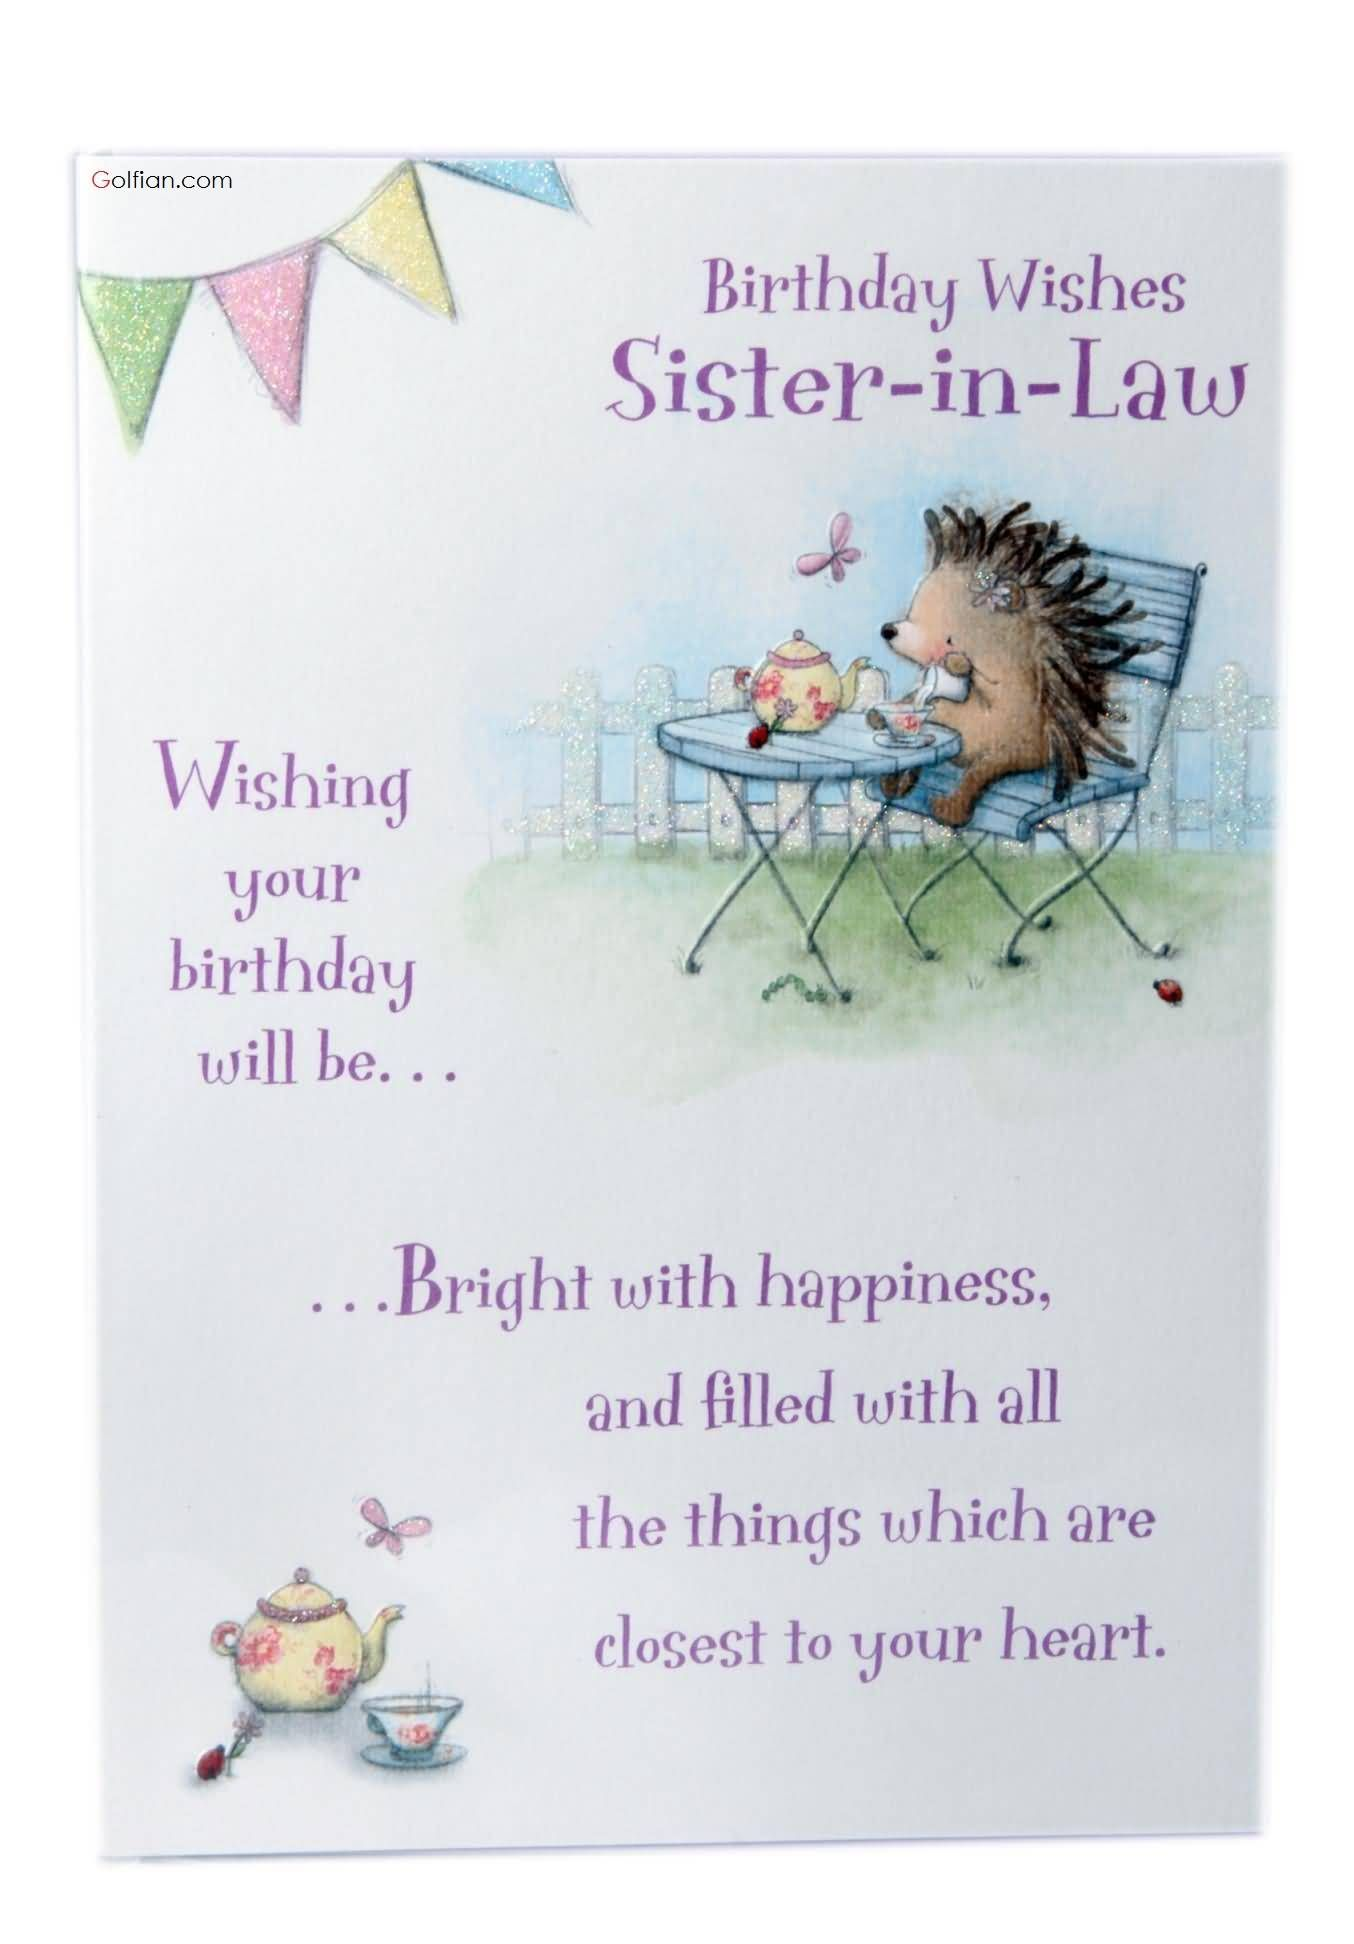 most beautiful birthday wishes for sister law best quotes – Funny Birthday Greetings for Sister in Law